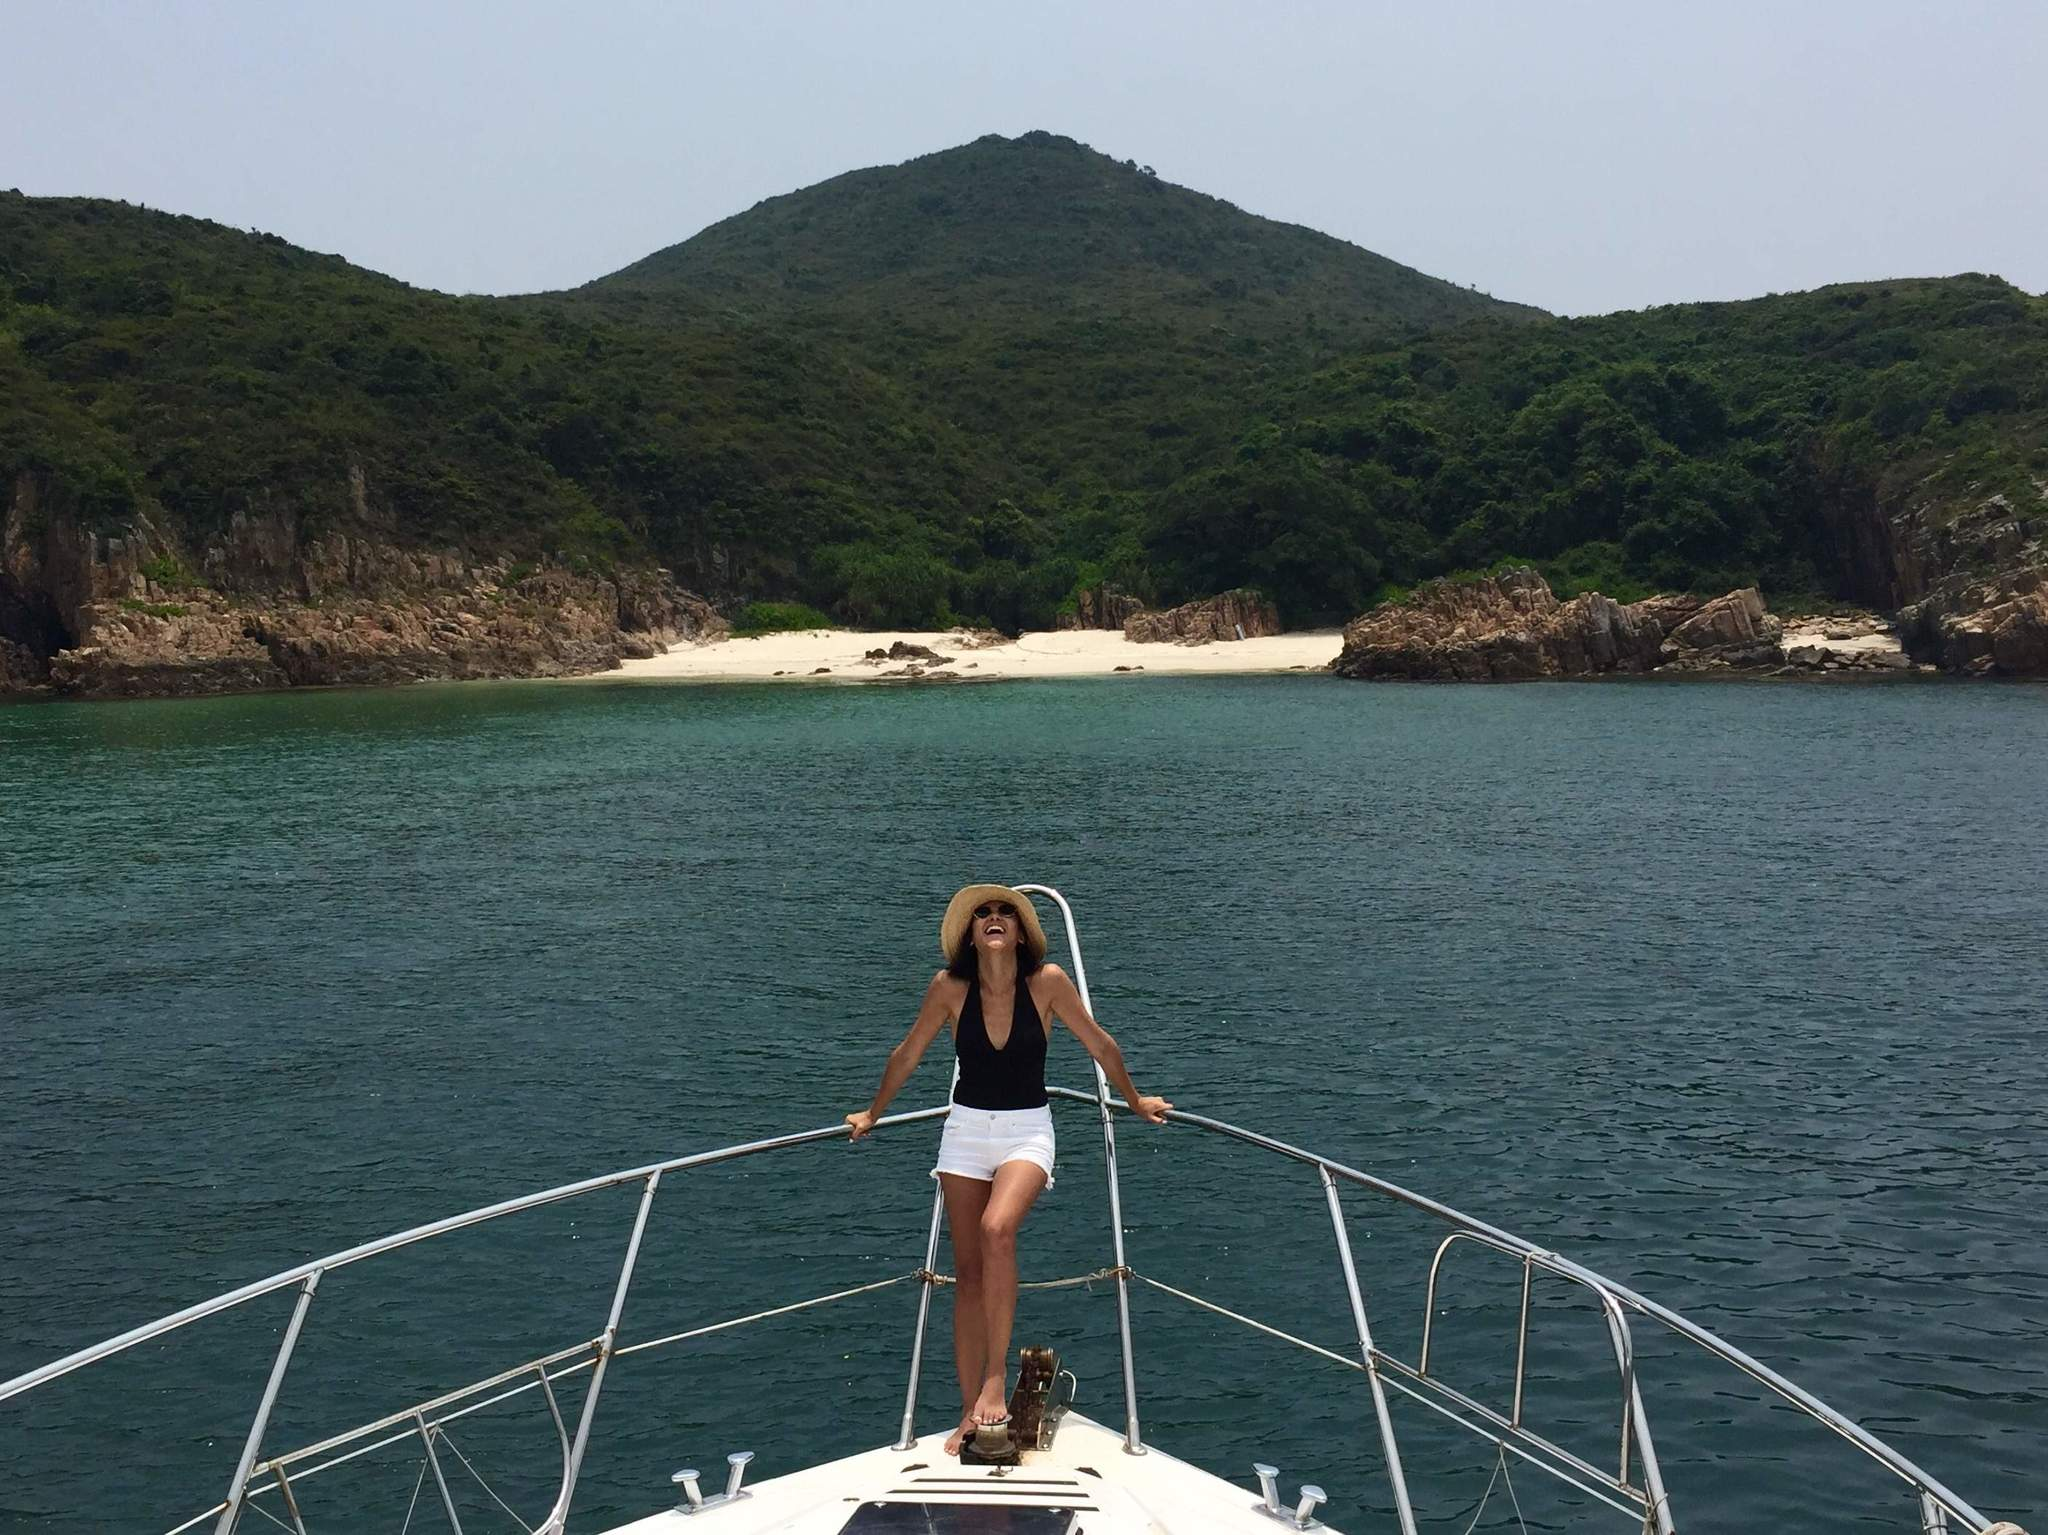 What to wear to a junk boat in Hong Kong